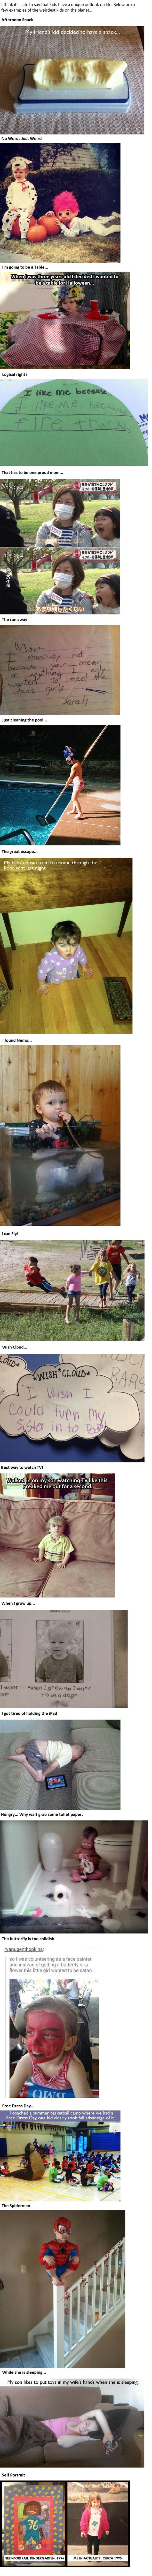 Is your kid a weirdo? Here's 20 kids that are... LOL -   Misc